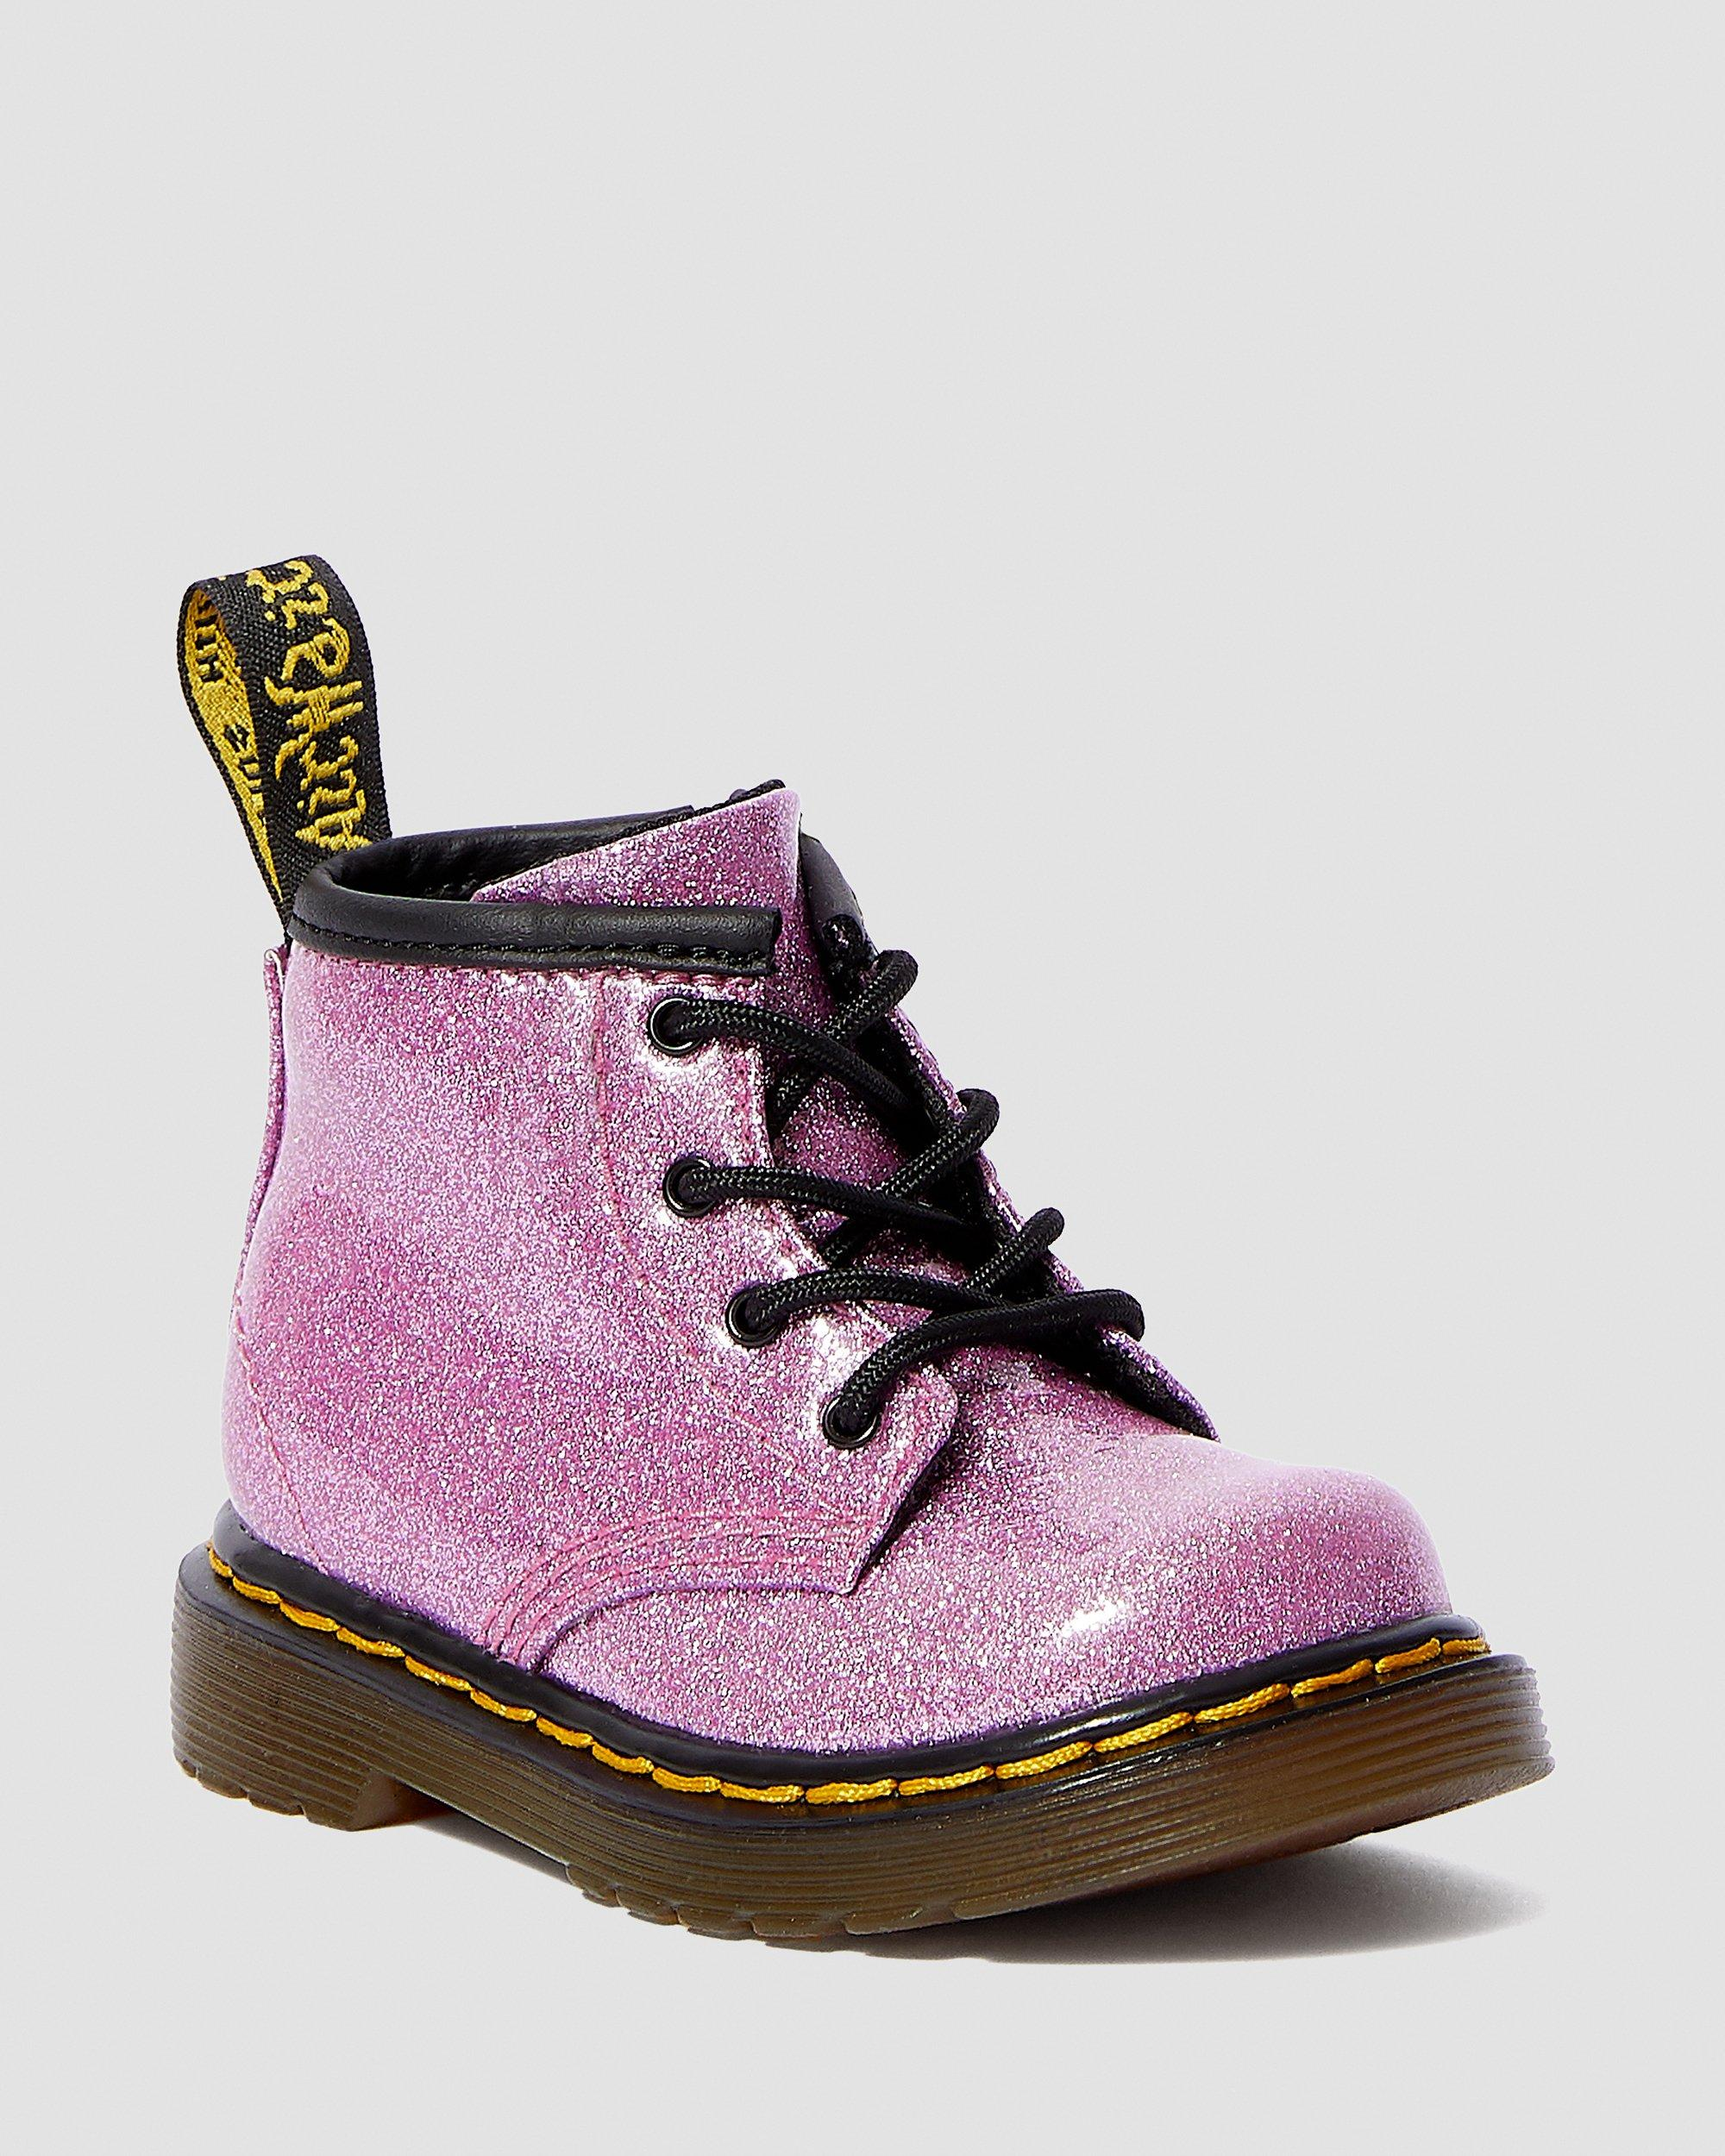 INFANT 1460 GLITTER LACE UP BOOTS | Kids | Dr. Martens Official